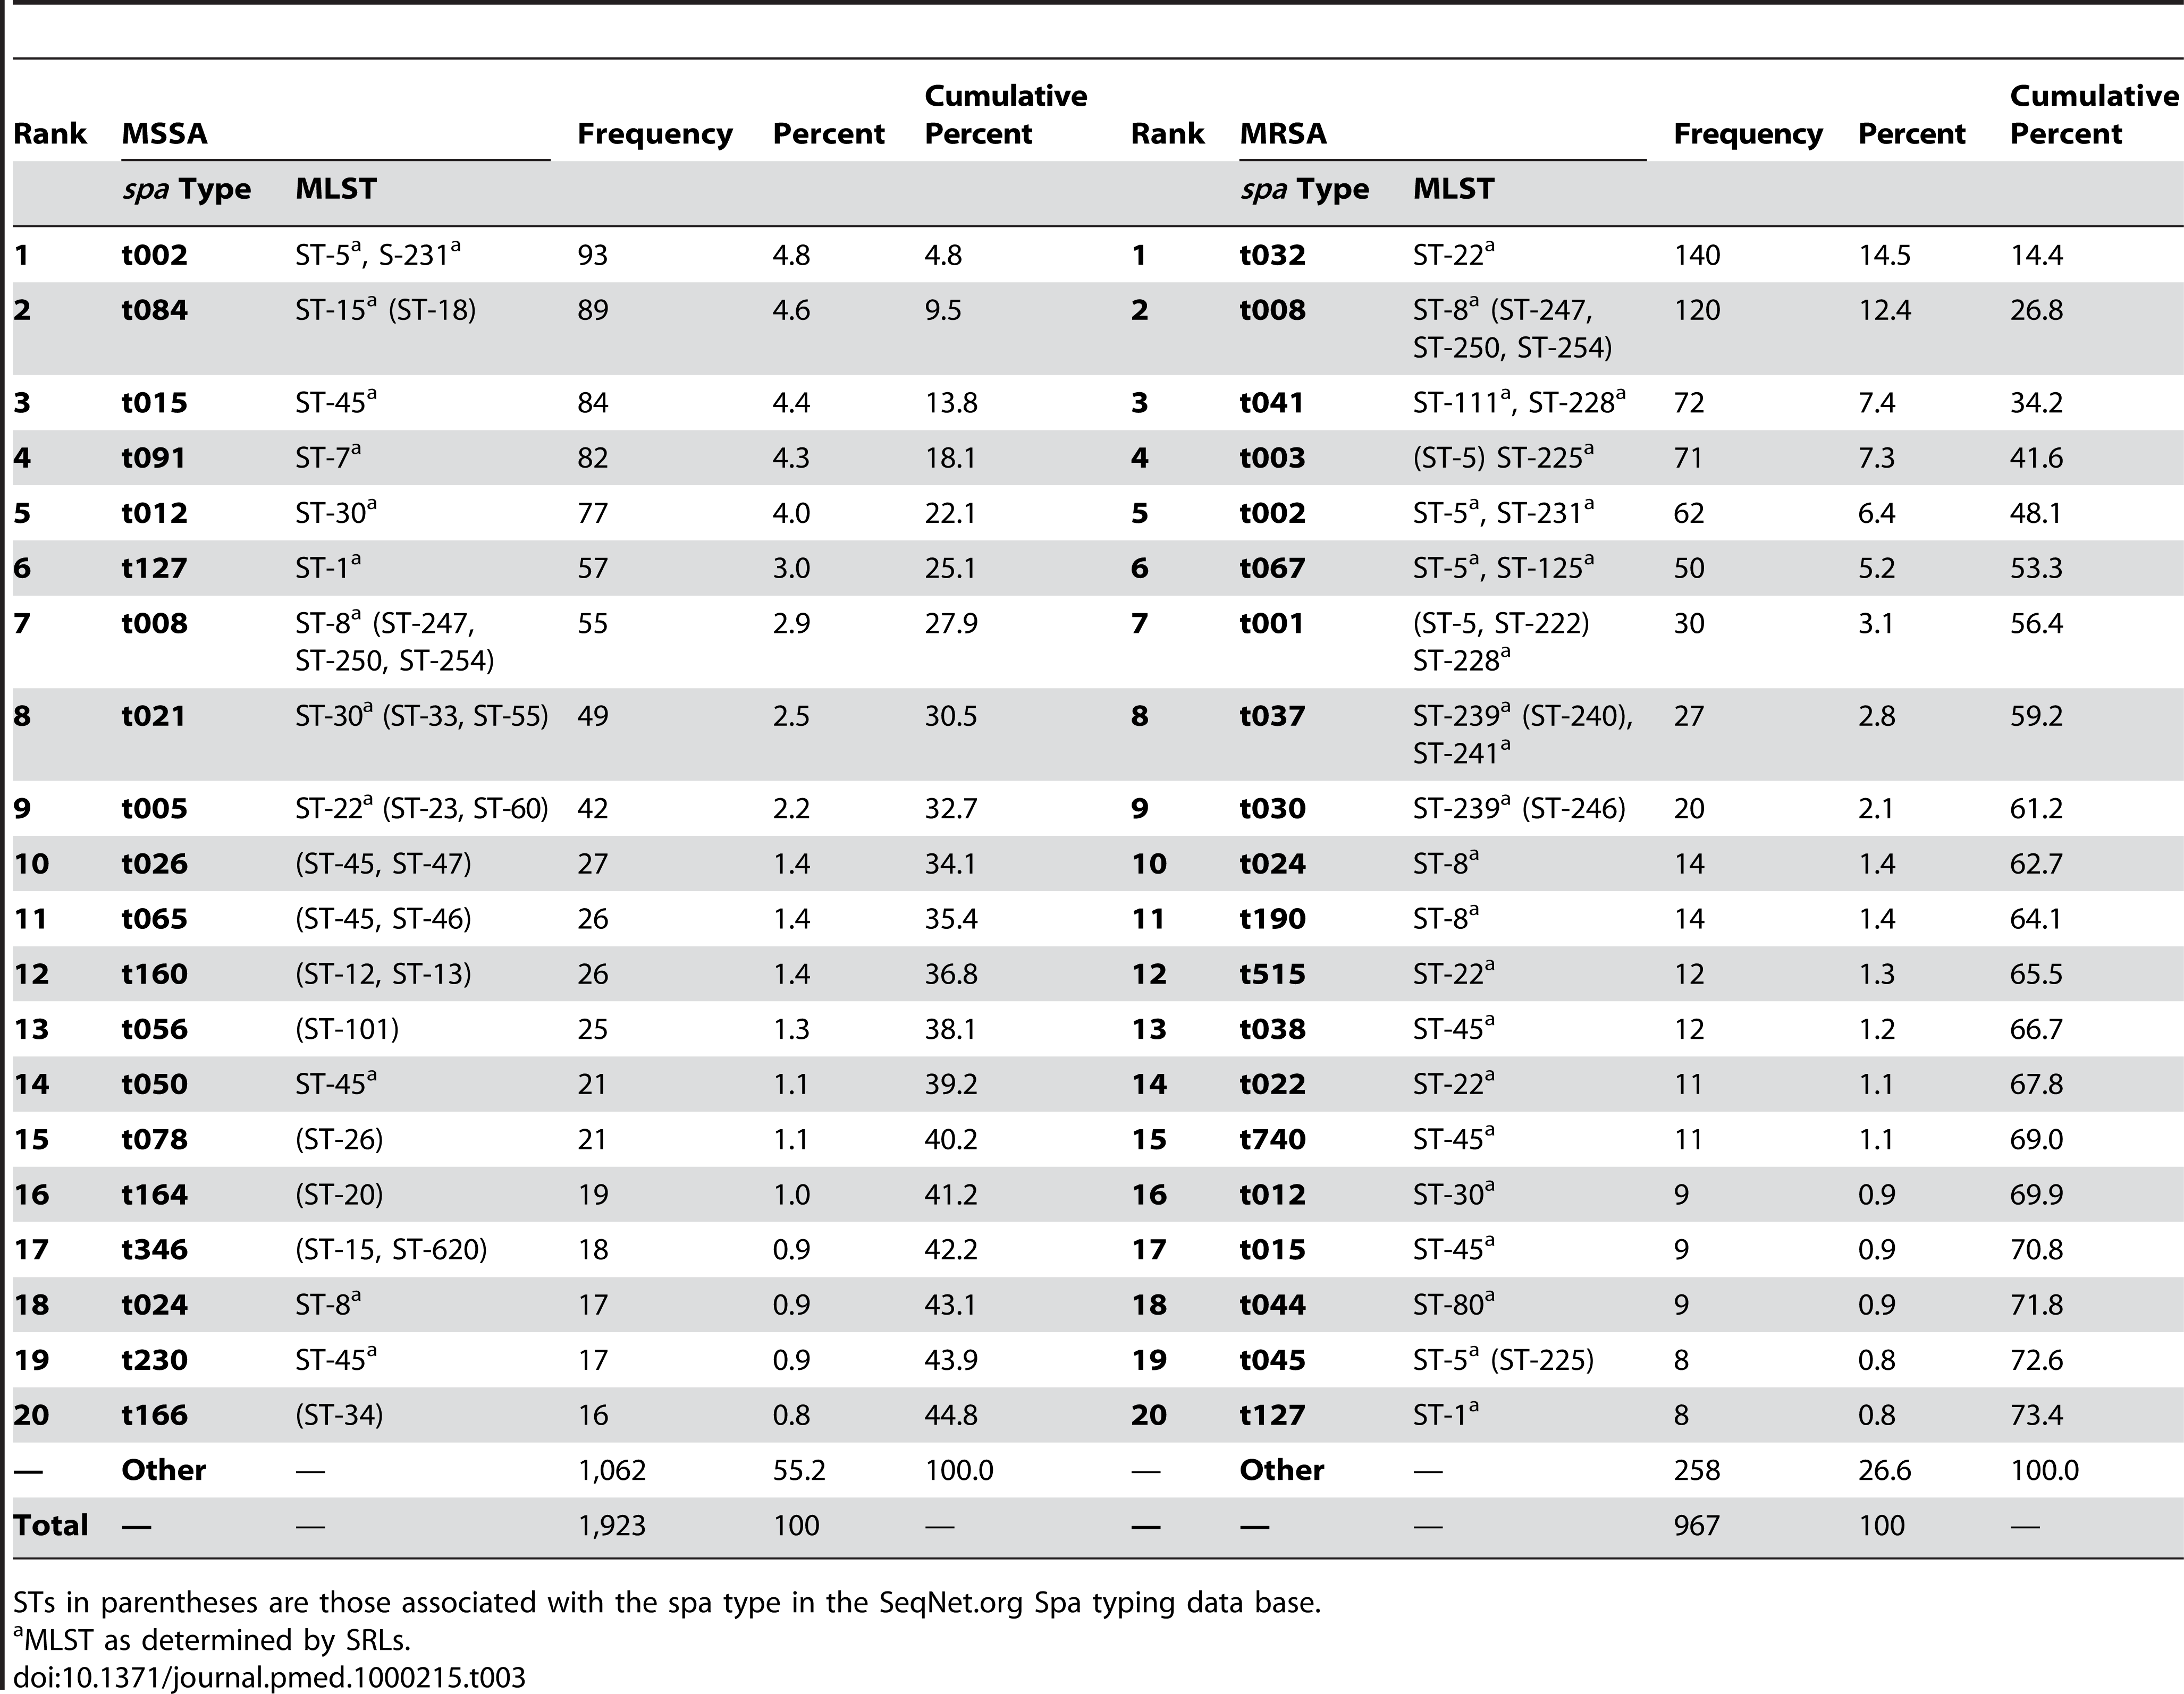 20 most frequent <i>spa</i> types and their STs among MSSA and MRSA isolated in 26 European countries.